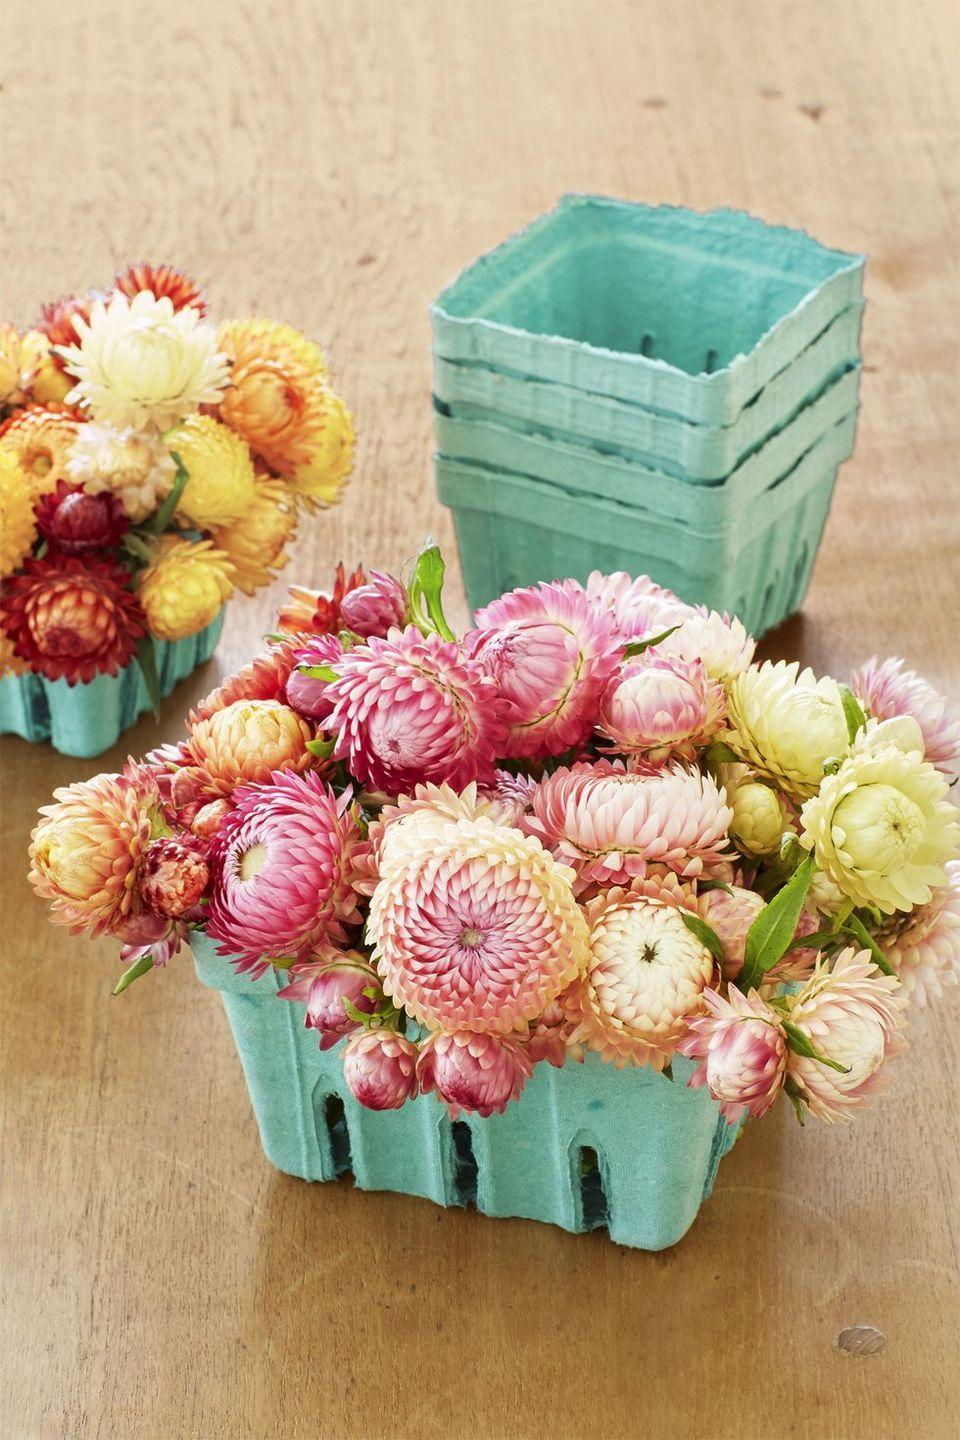 <p>While a centerpiece makes a bold statement, scattered floral arrangements can also make a big impact. Turn your leftover berry baskets into vases that perfectly fit a medley of hydrangeas, ranunculuses, and peonies. </p>